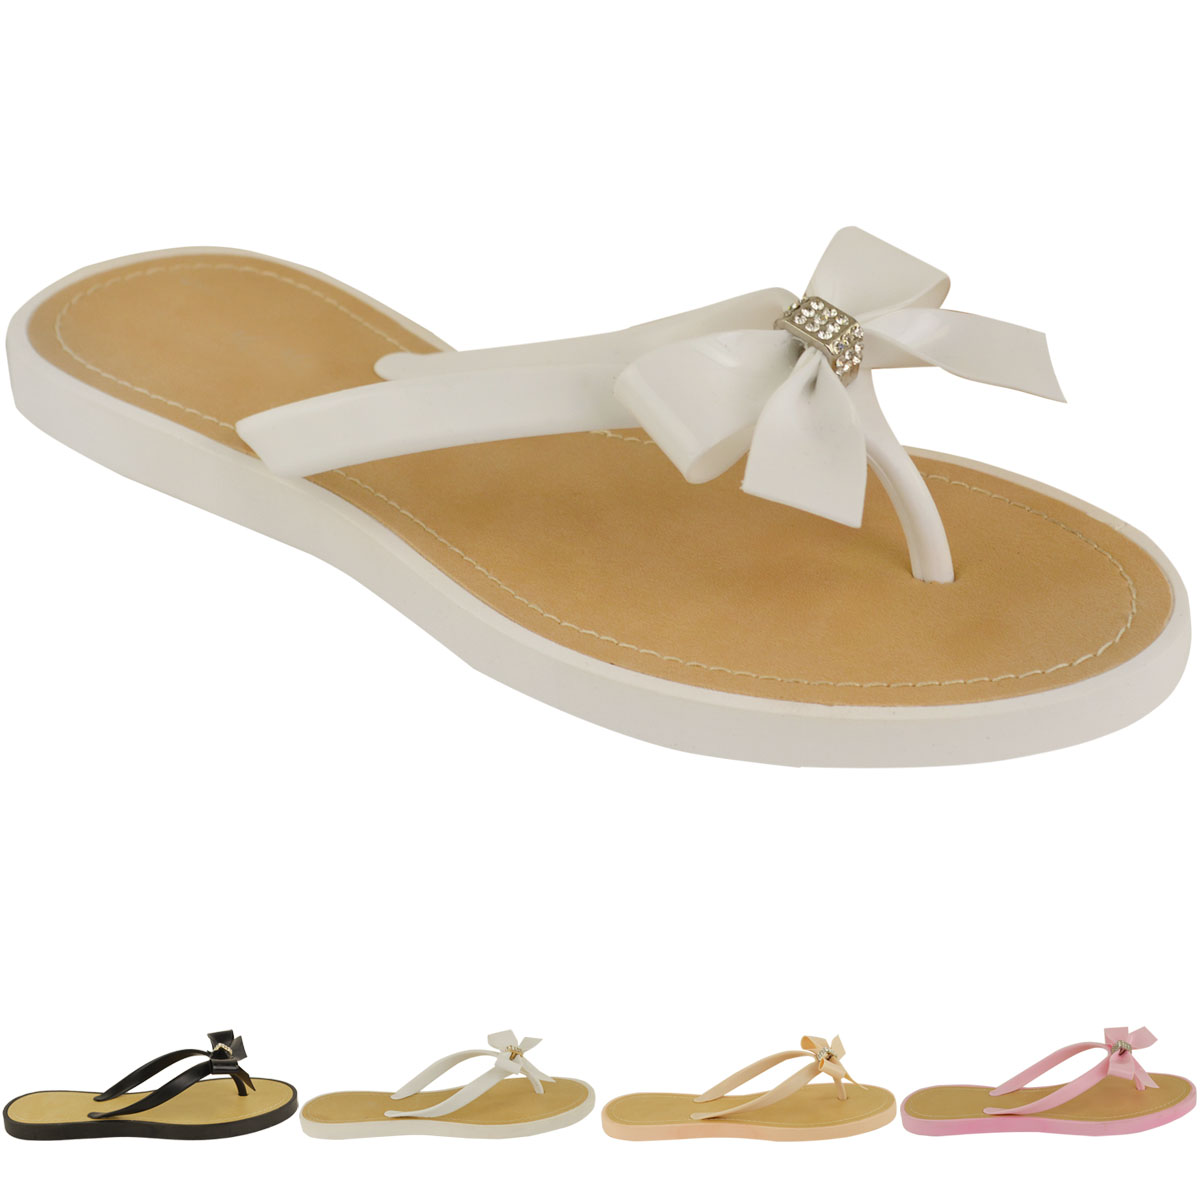 Elegant Volcom Womens Beach Party Sandals  Shoes Trend Blog